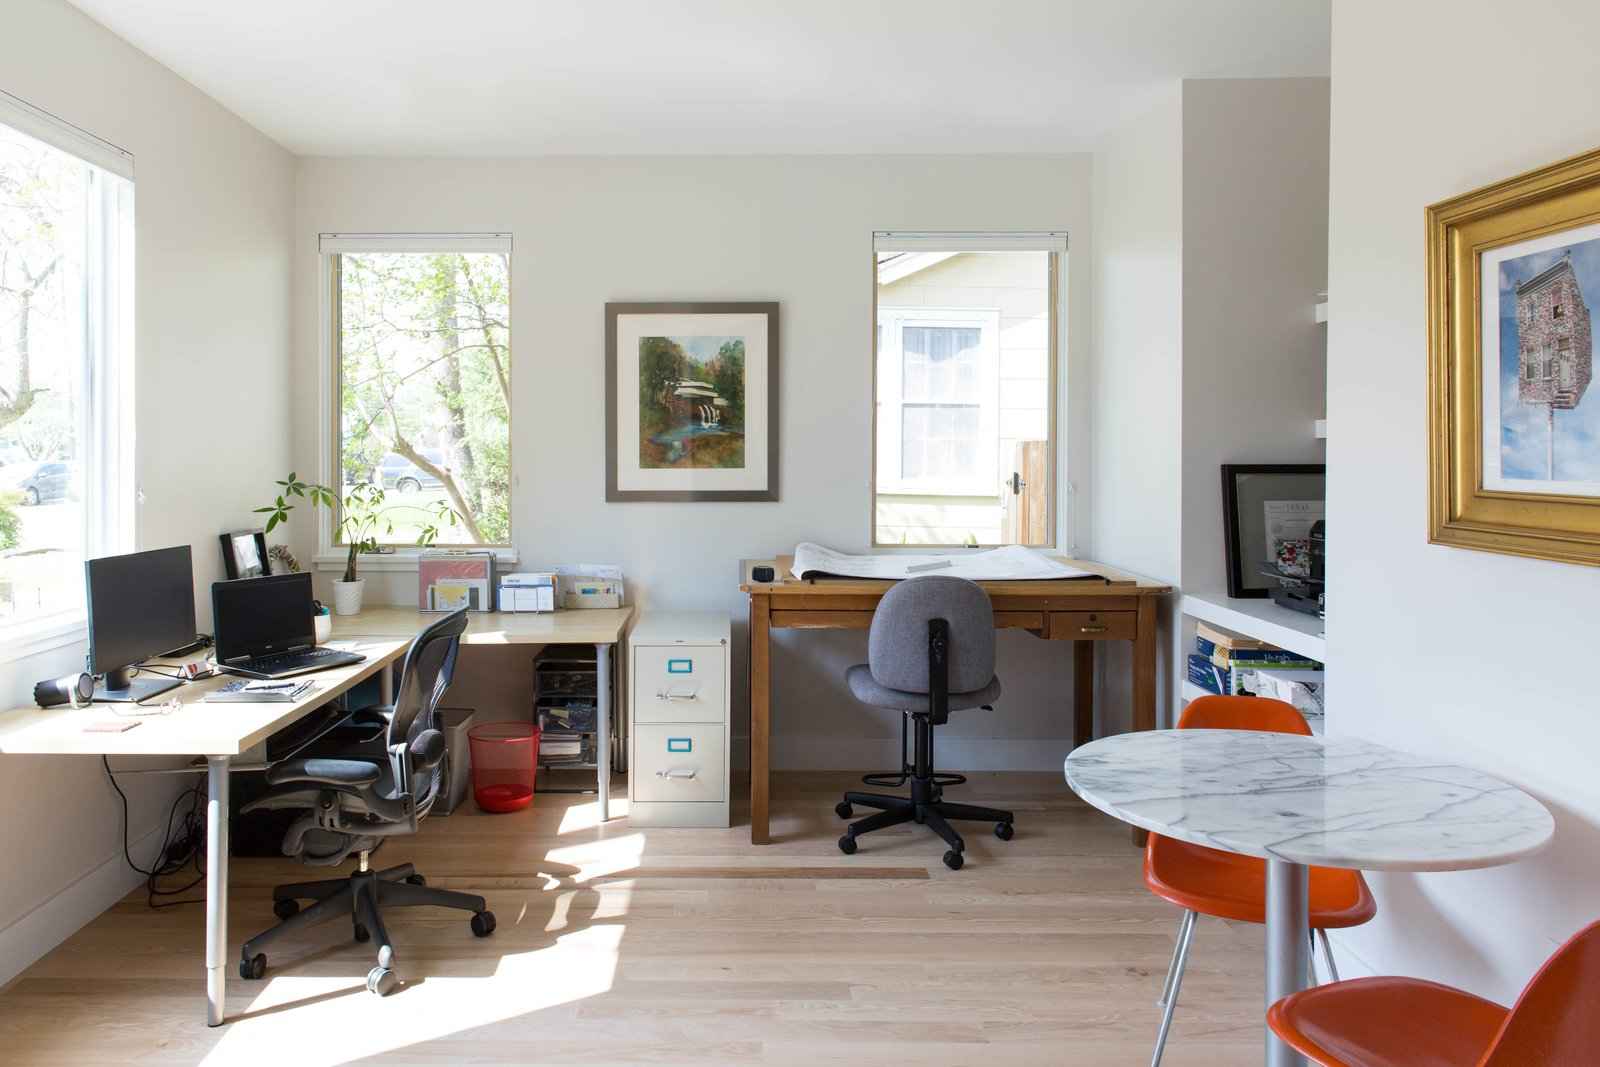 The Architect's home office, situated in the front corner of the house, allows for ample natural light and views. The office has its own entrance and is attached to the Powder Bath, which can also be entered from the hallway near the Living Room.  Photo 8 of 8 in Q&A With an Architect About What it's Like to Design Your Own Home